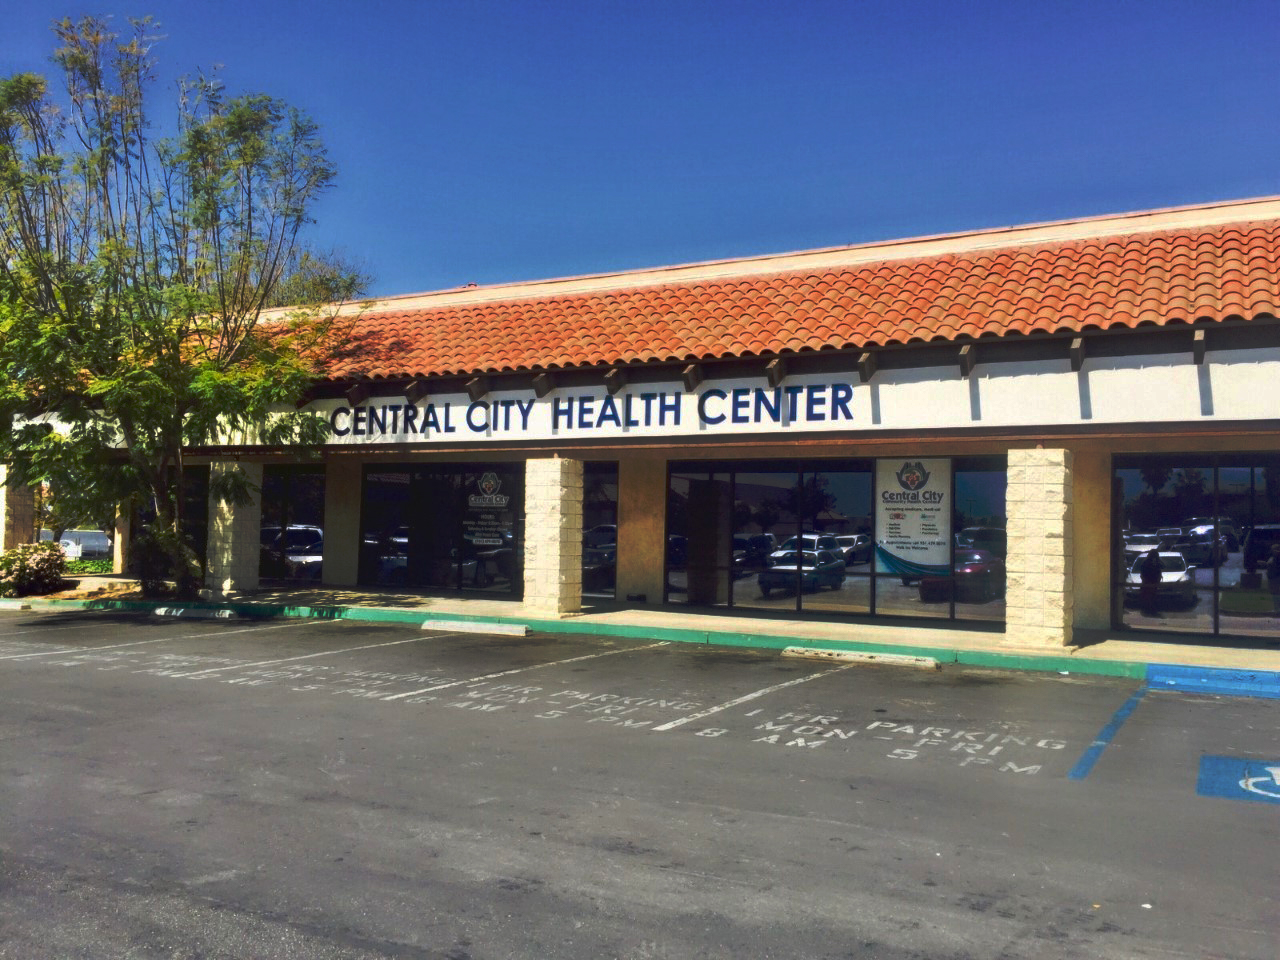 Central City Community Health Center, Norco Clinic